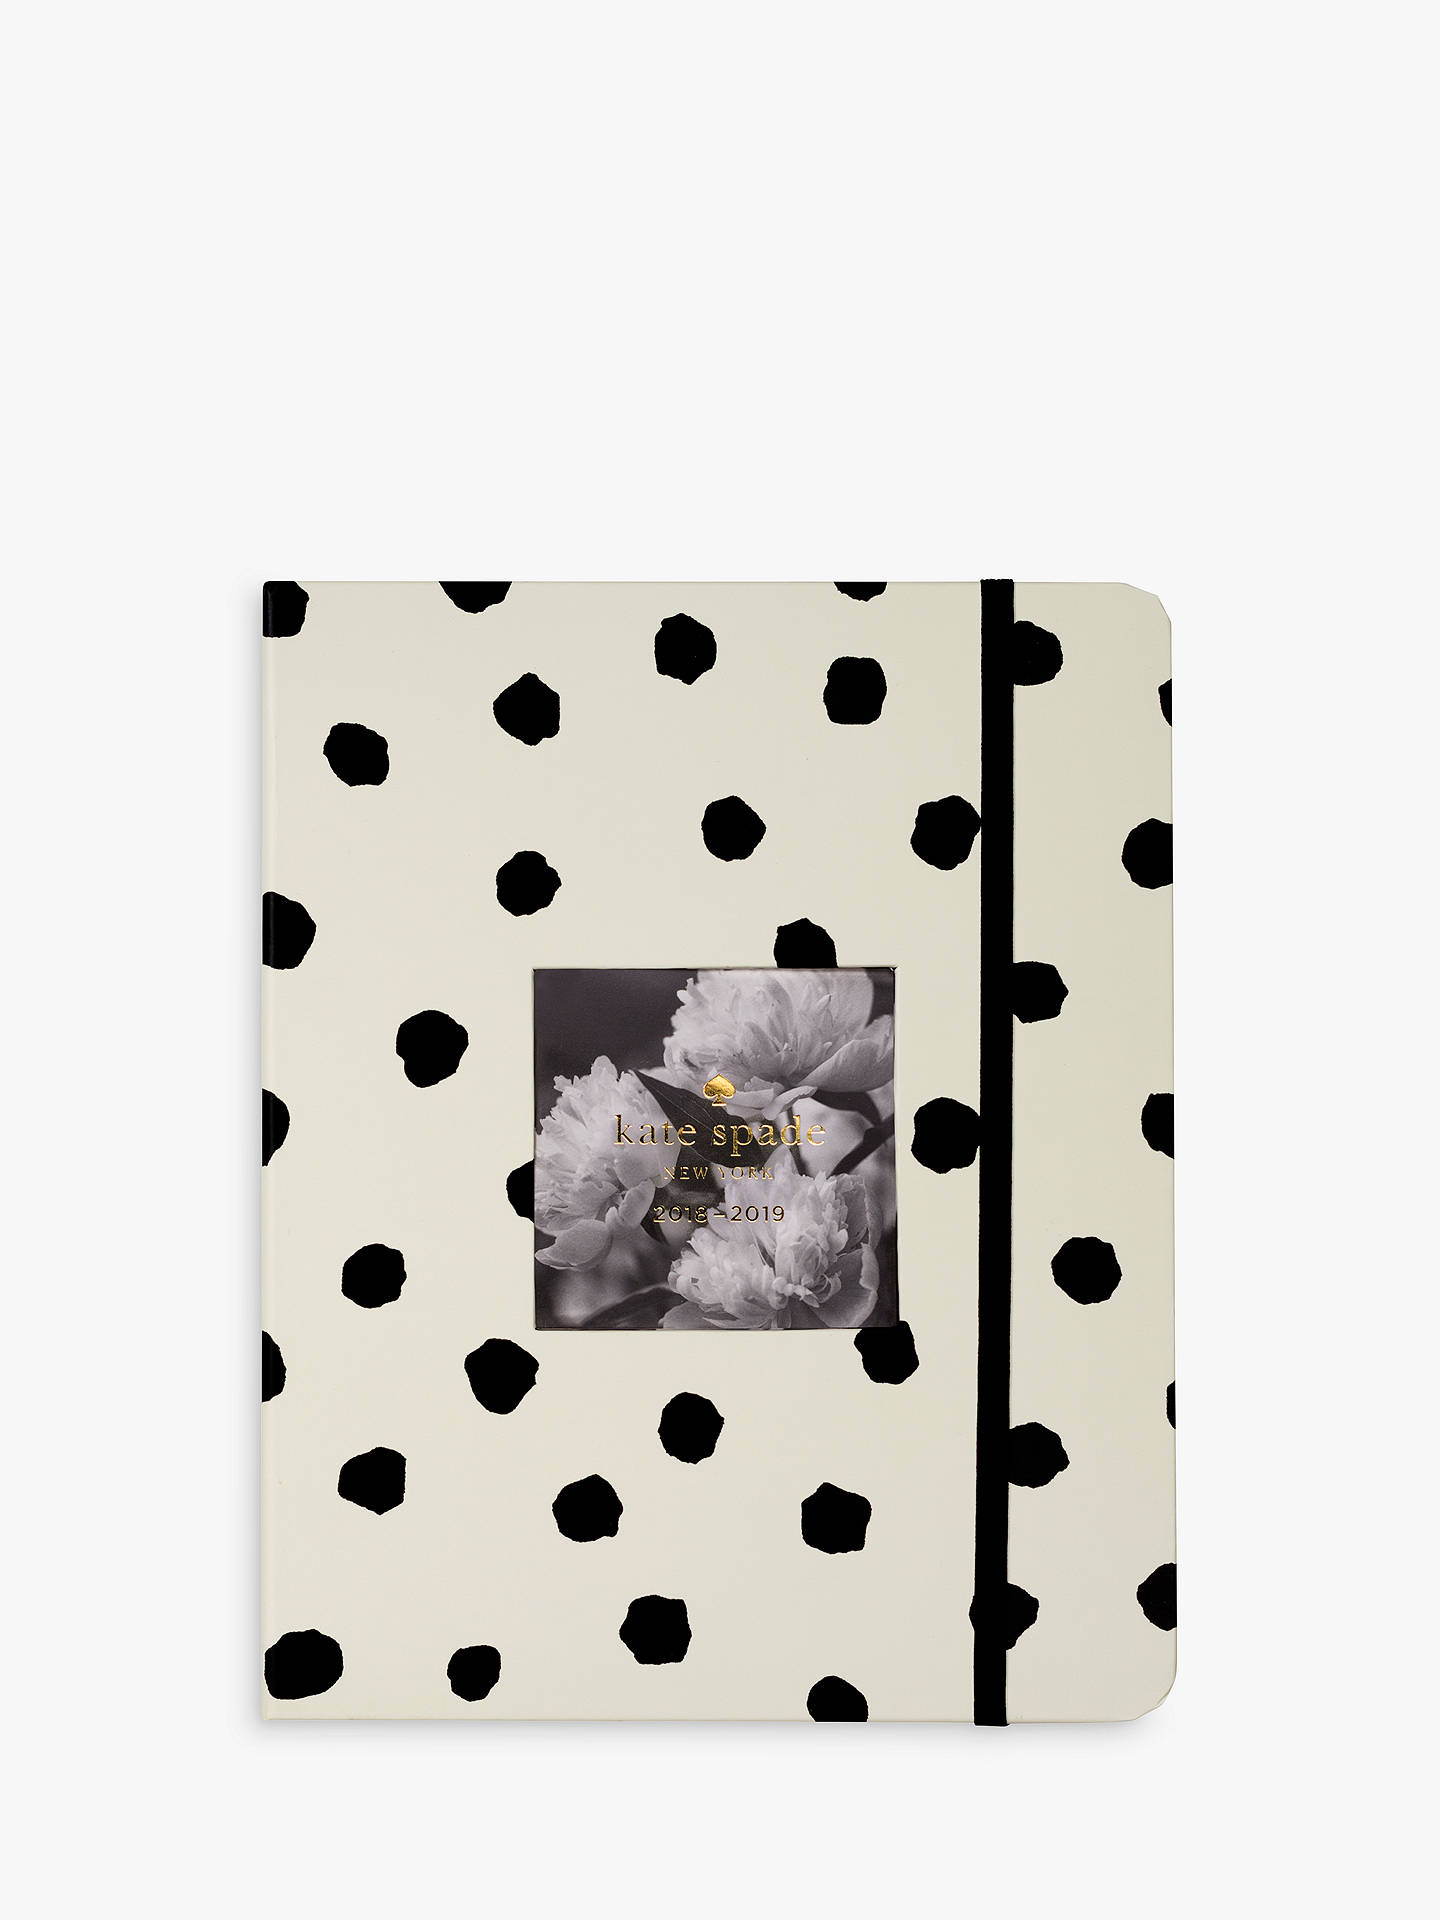 kate spade new york Large Spotty Mid Year 2018/2019 Planner